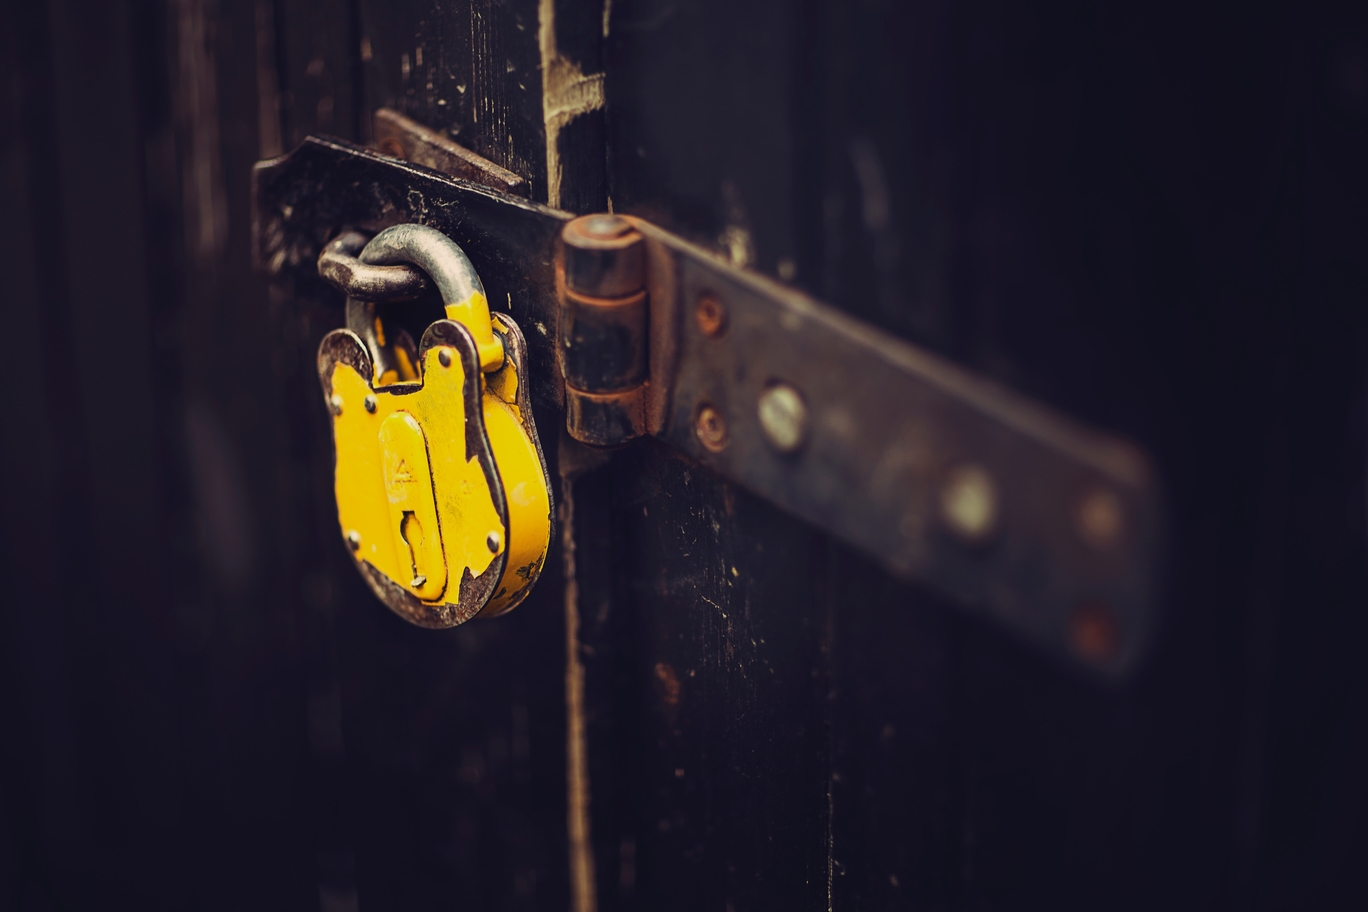 Use 3rd party React Components without vendor lock-in - cover